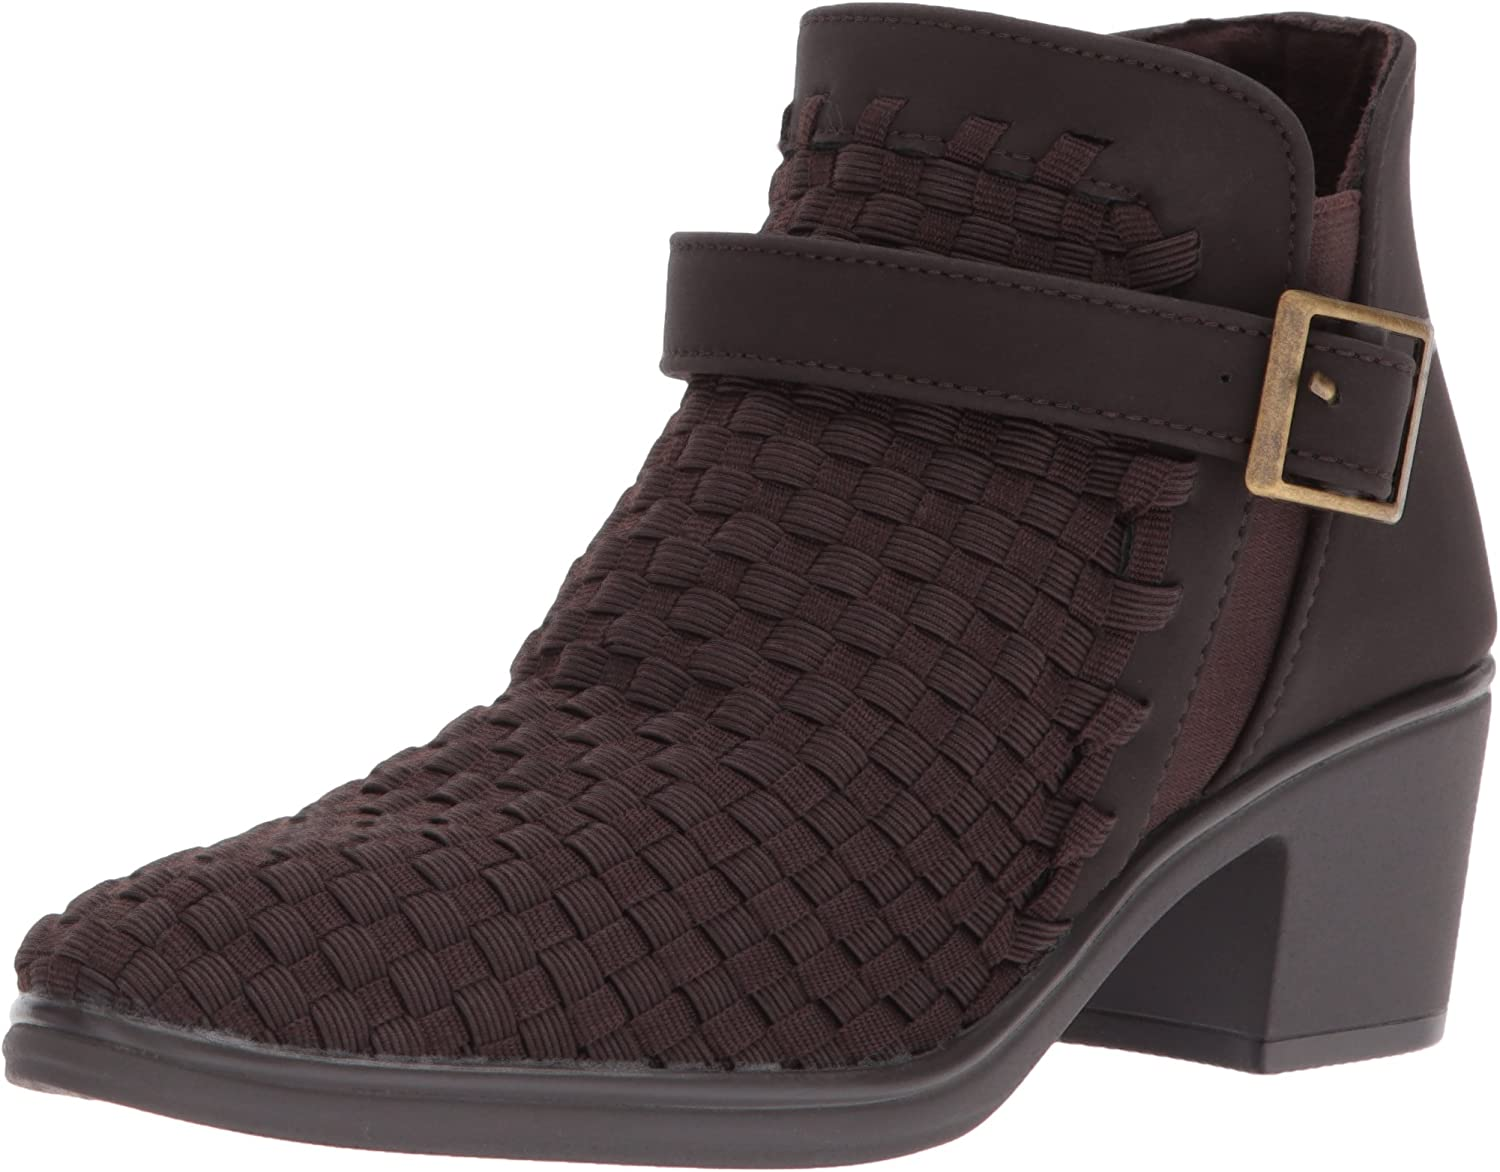 STEVEN by Steve Madden Womens Nc-Padre Ankle Bootie